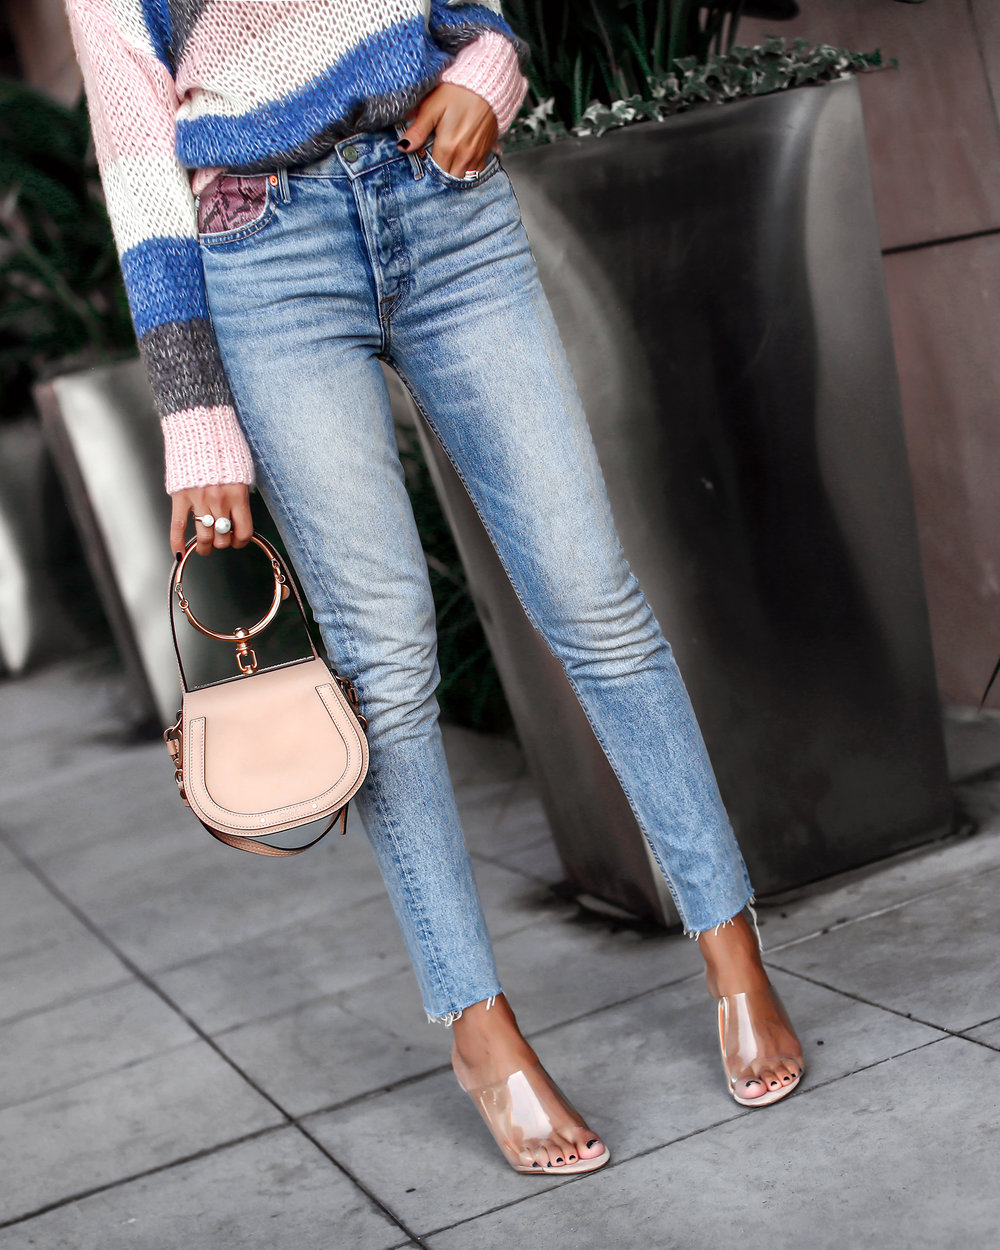 Brunette Woman Wearing Grlfrnd Denim and Plexi Sandals